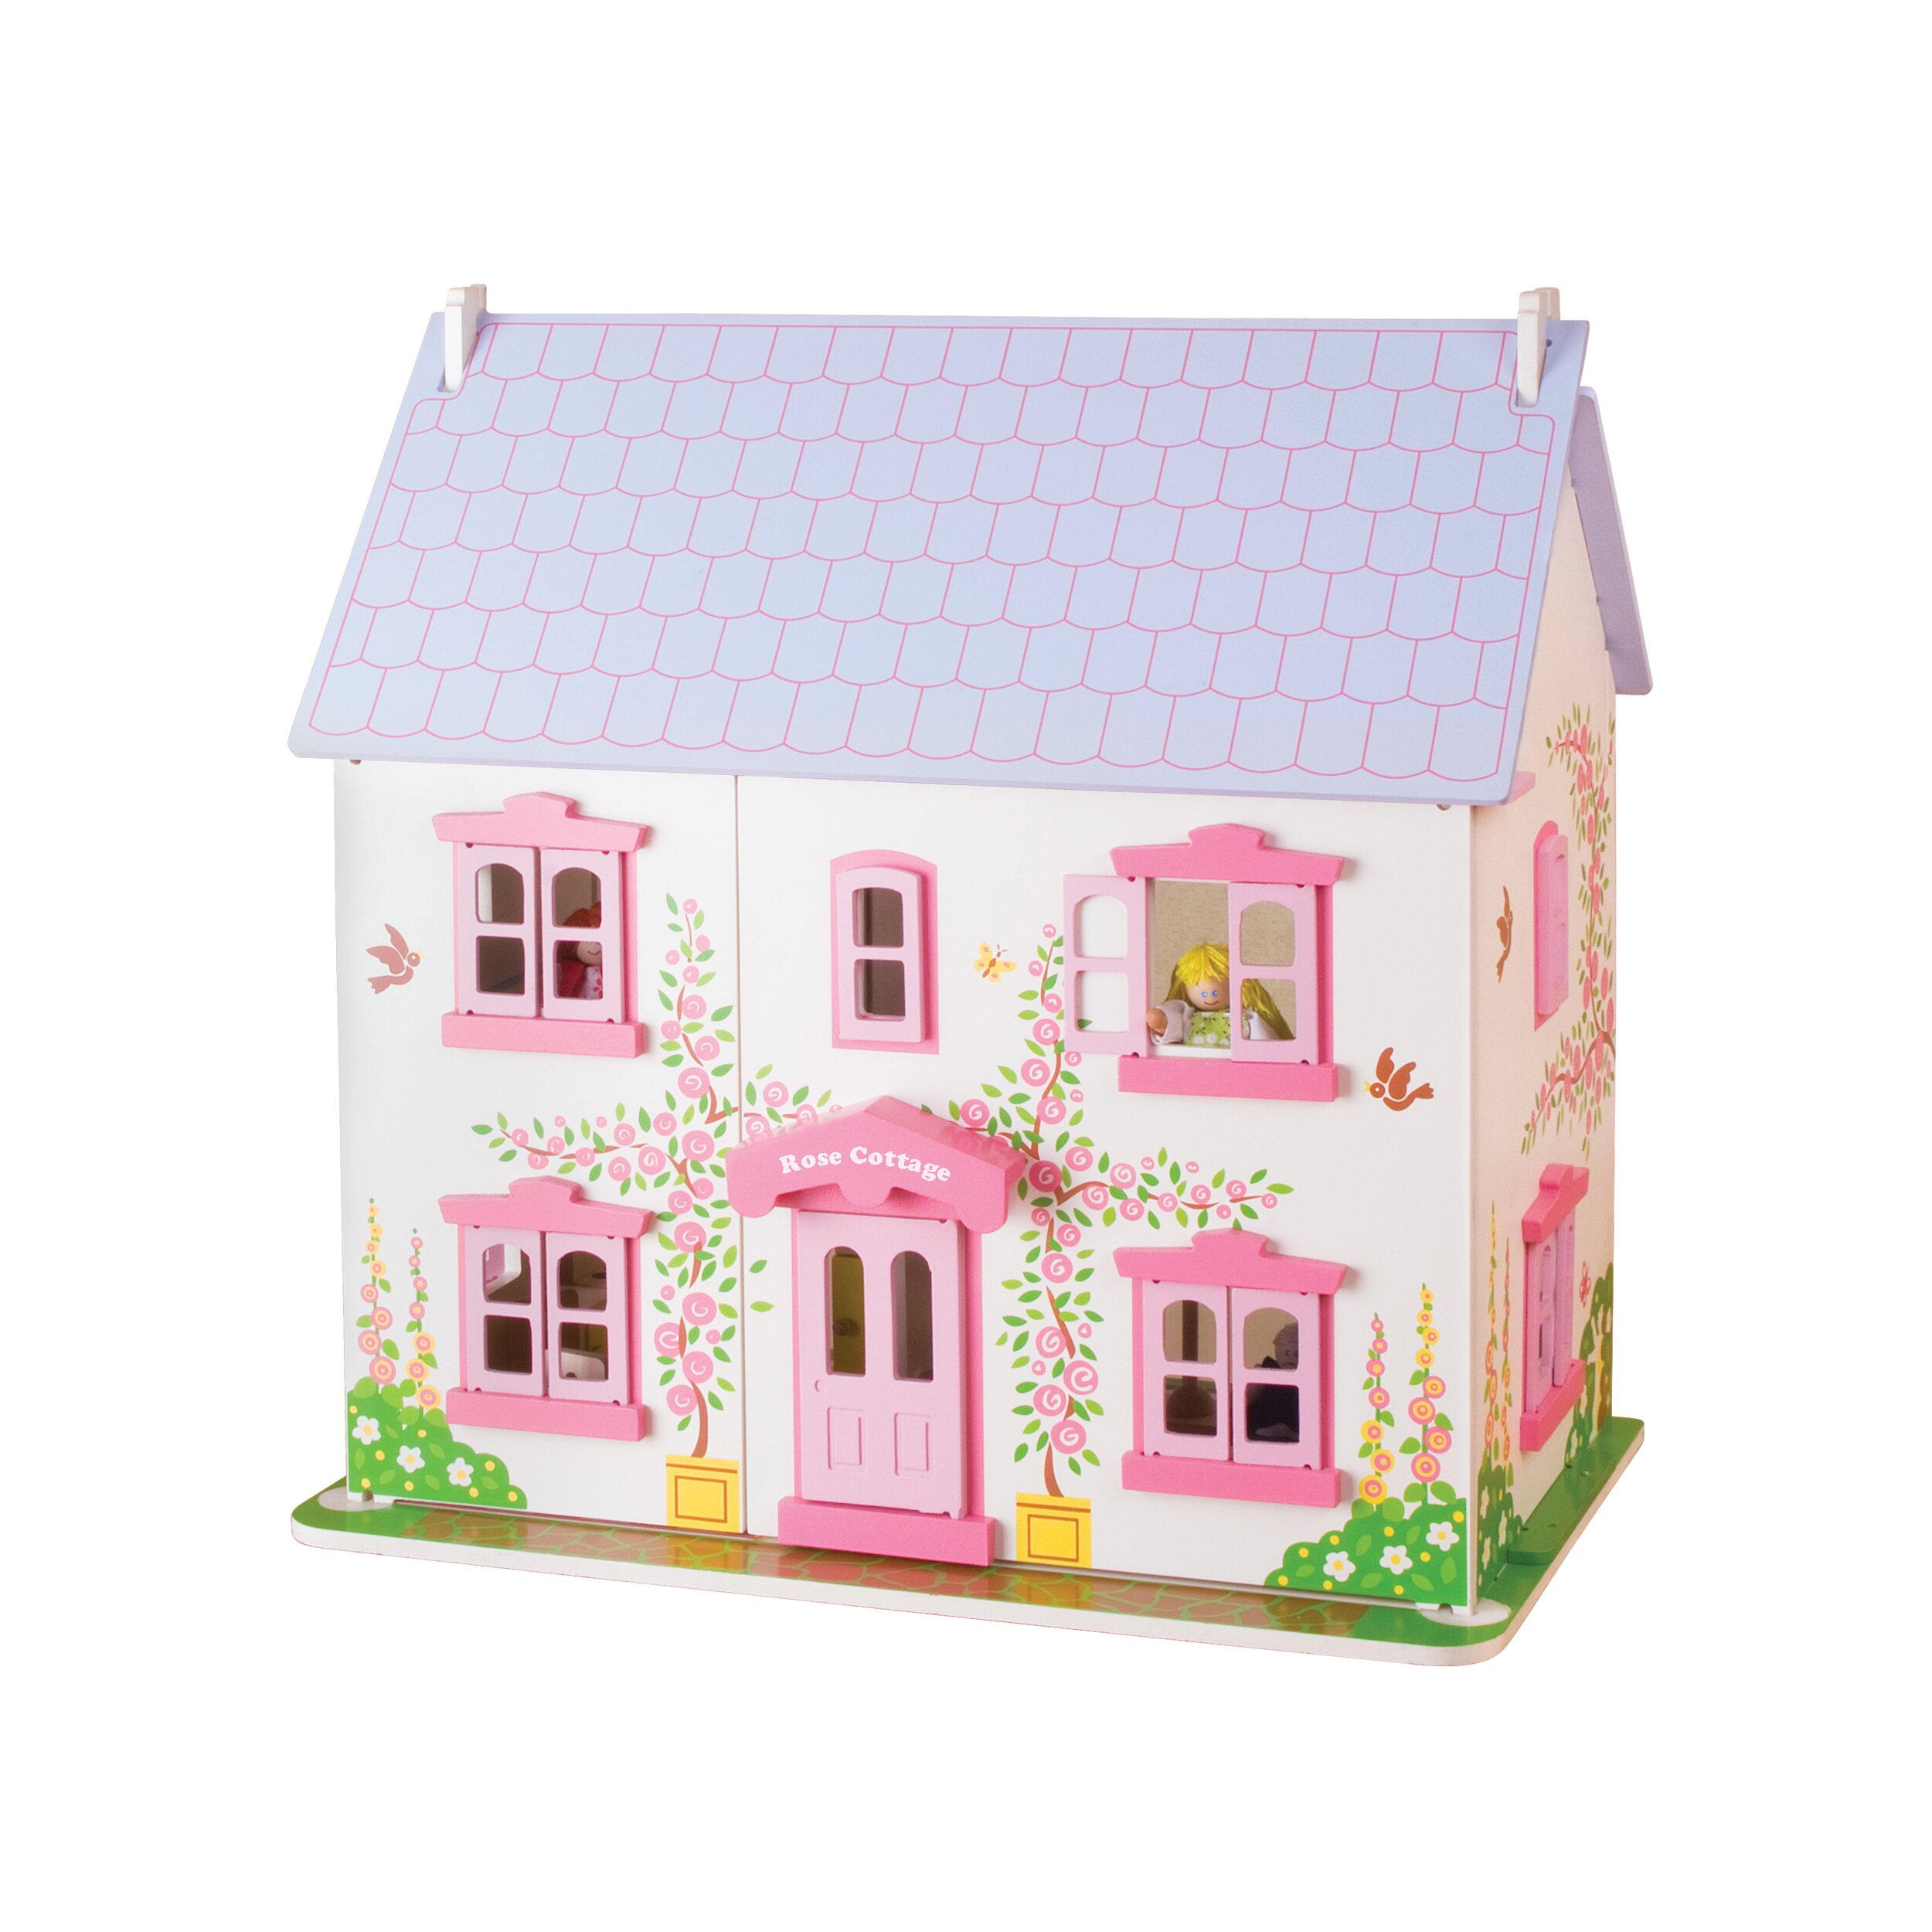 Rose Cottage Toys 39